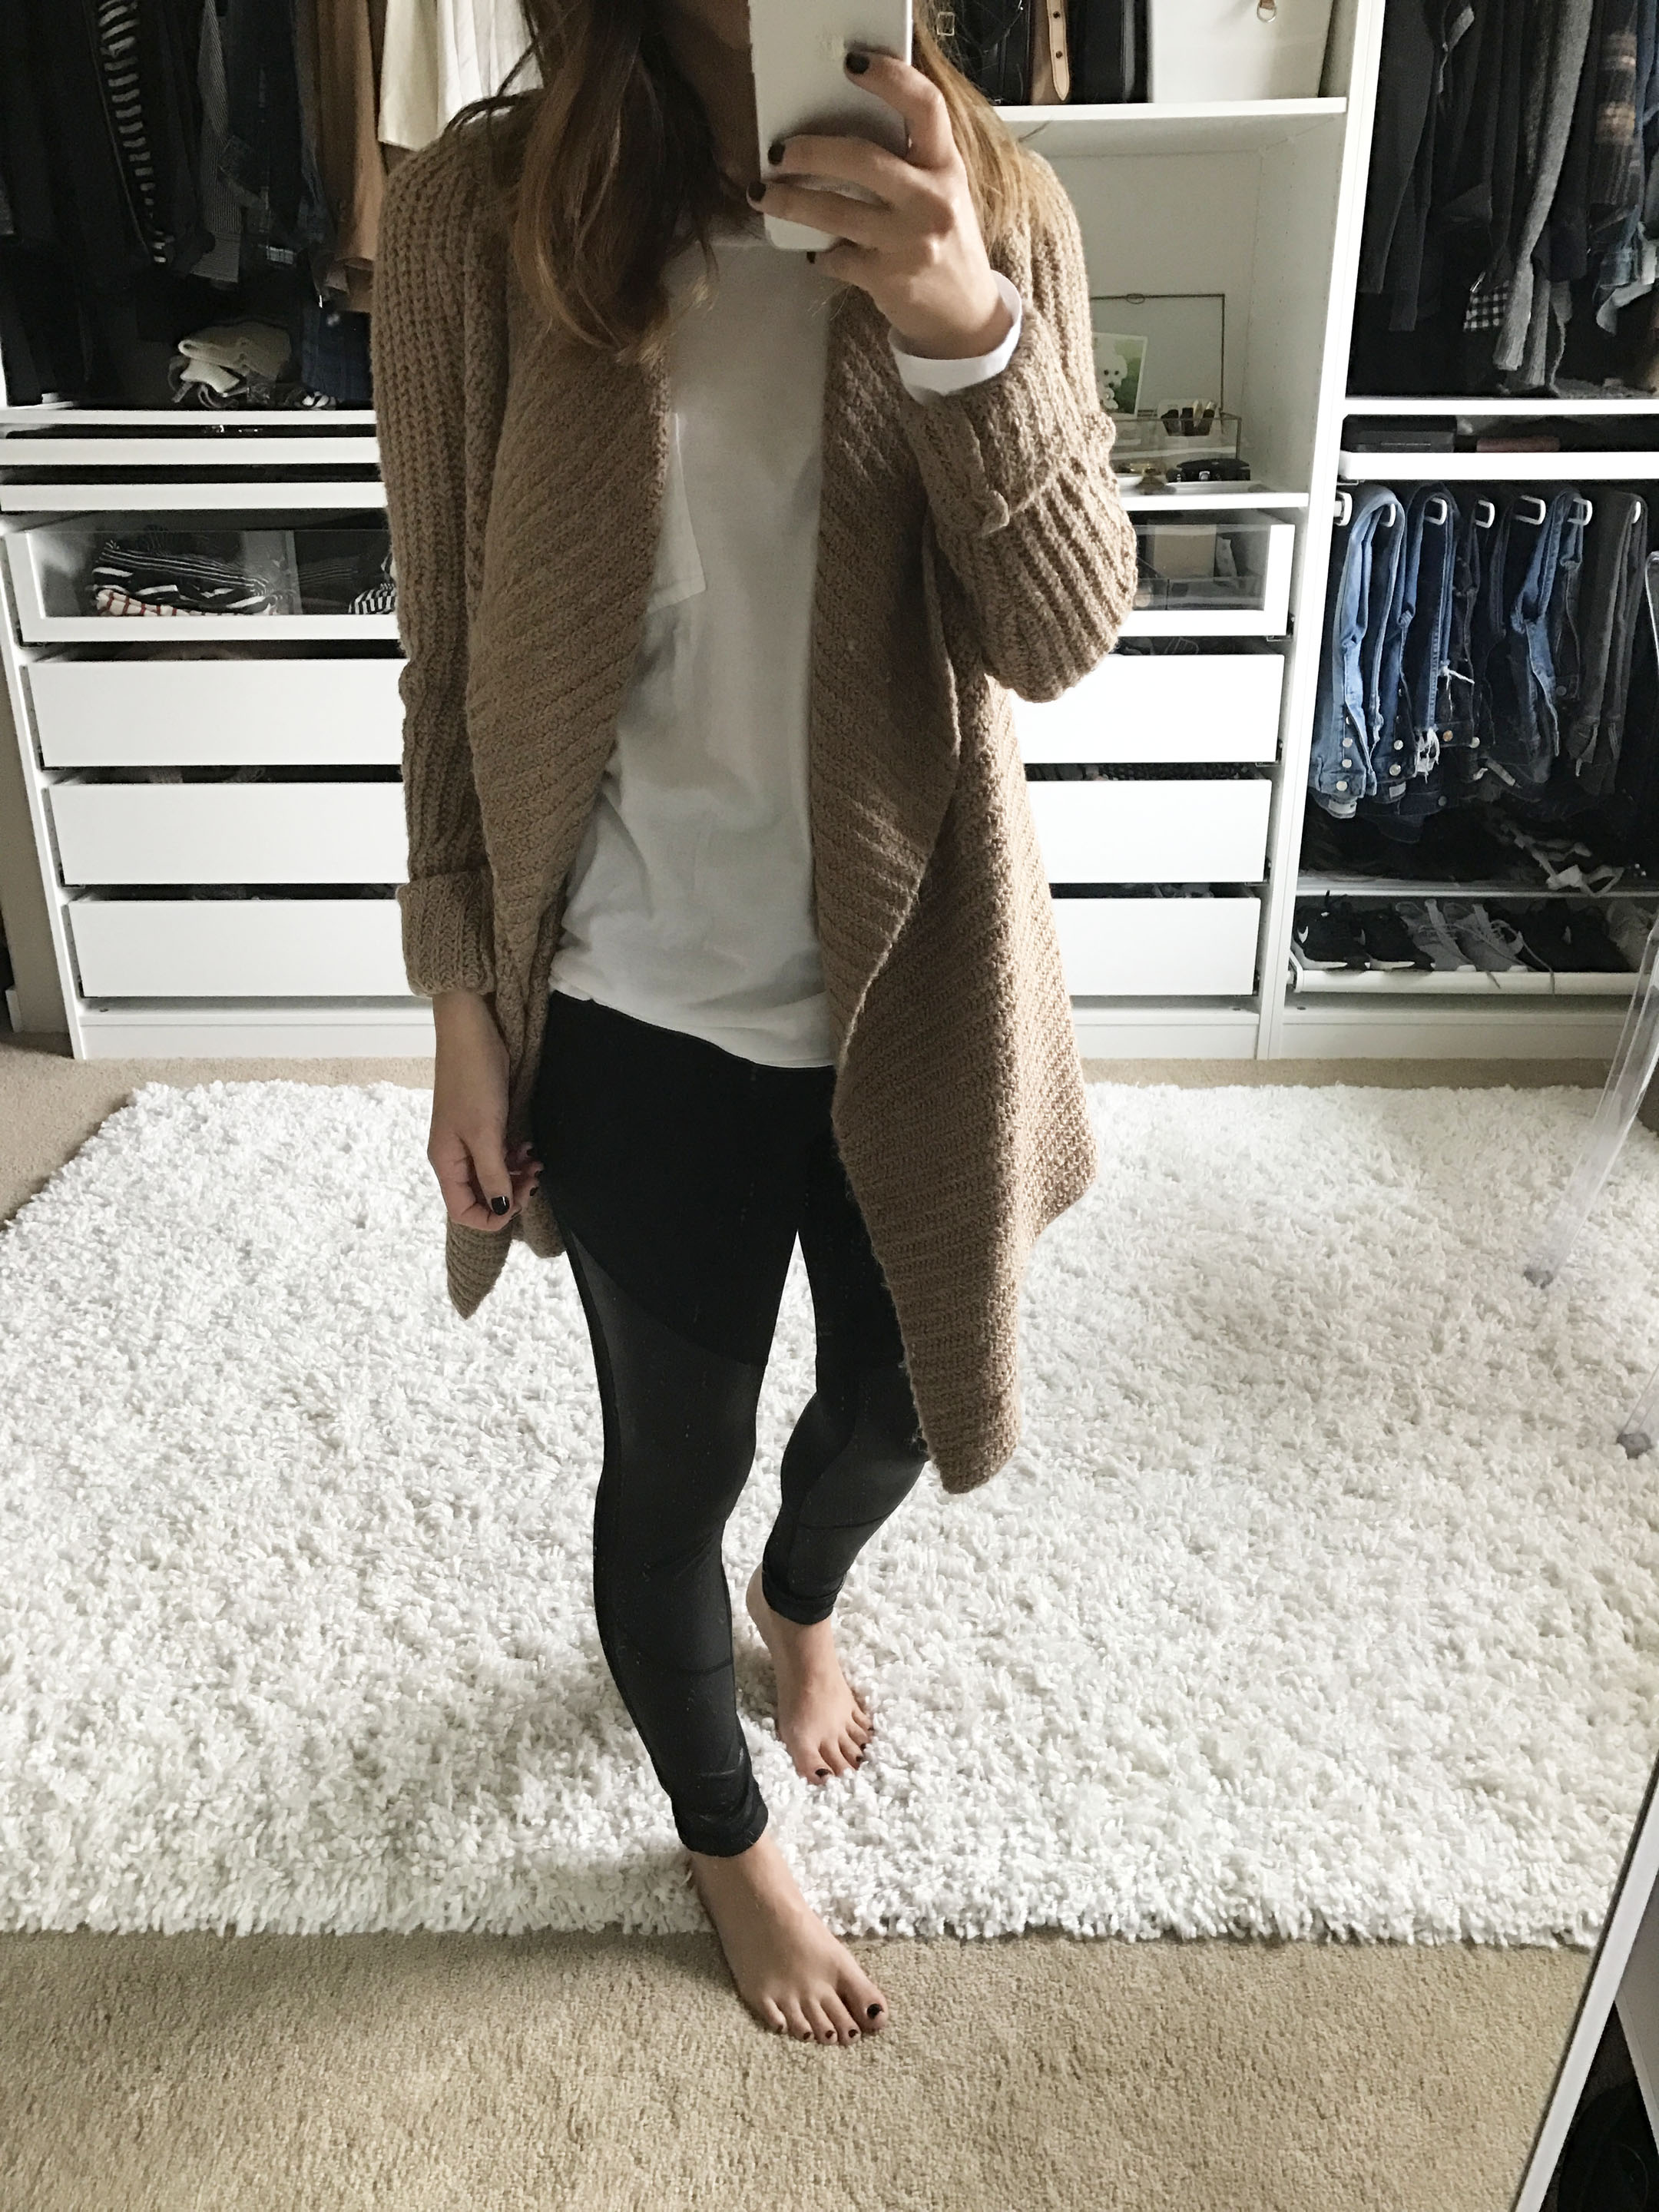 Abercrombie & Fitch camel cardigan